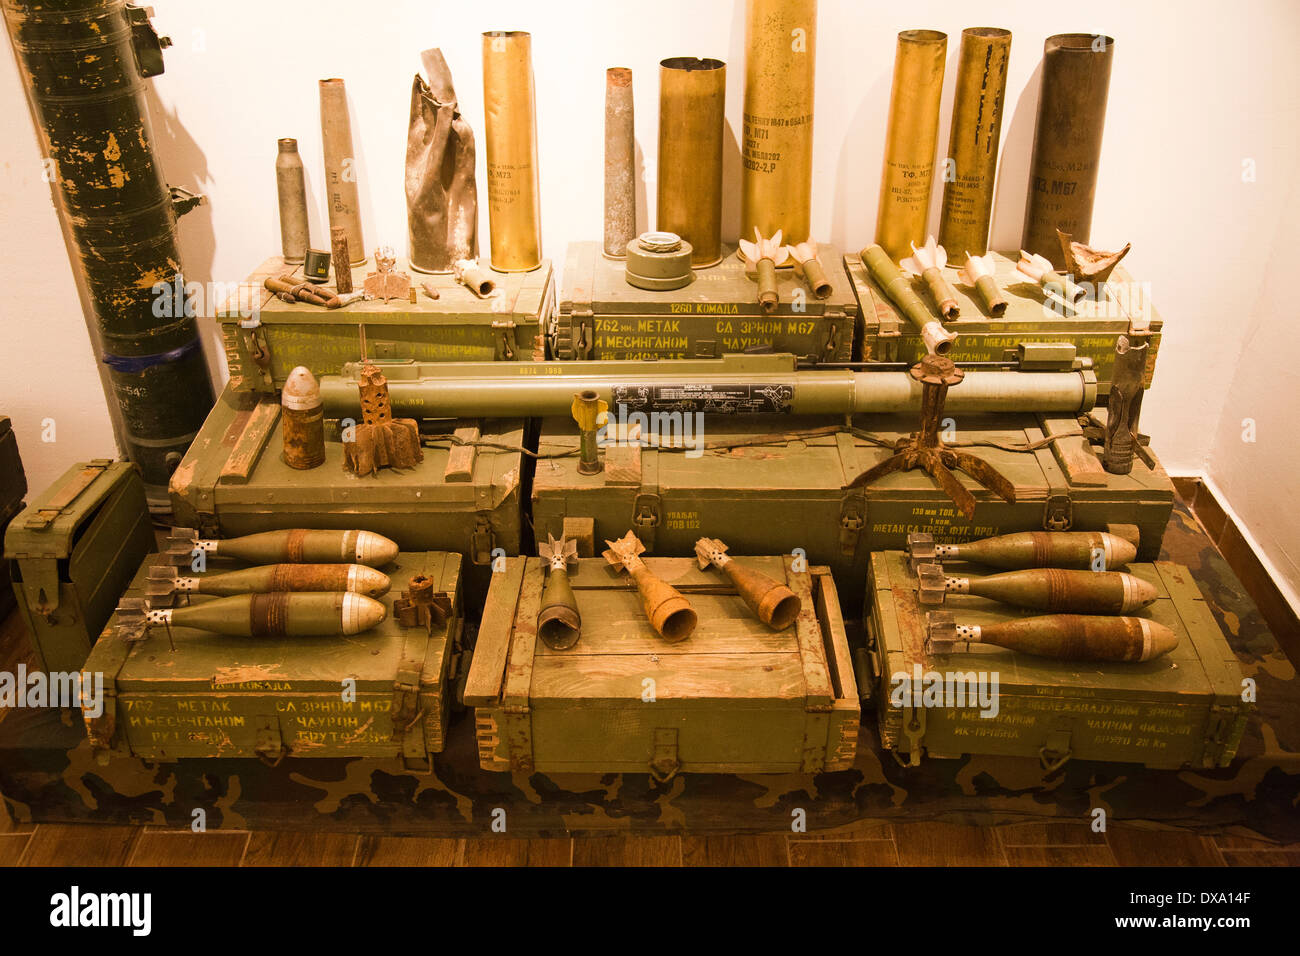 bombs, the tunnel, sarajevo, bosnia and herzegovina, europe - Stock Image